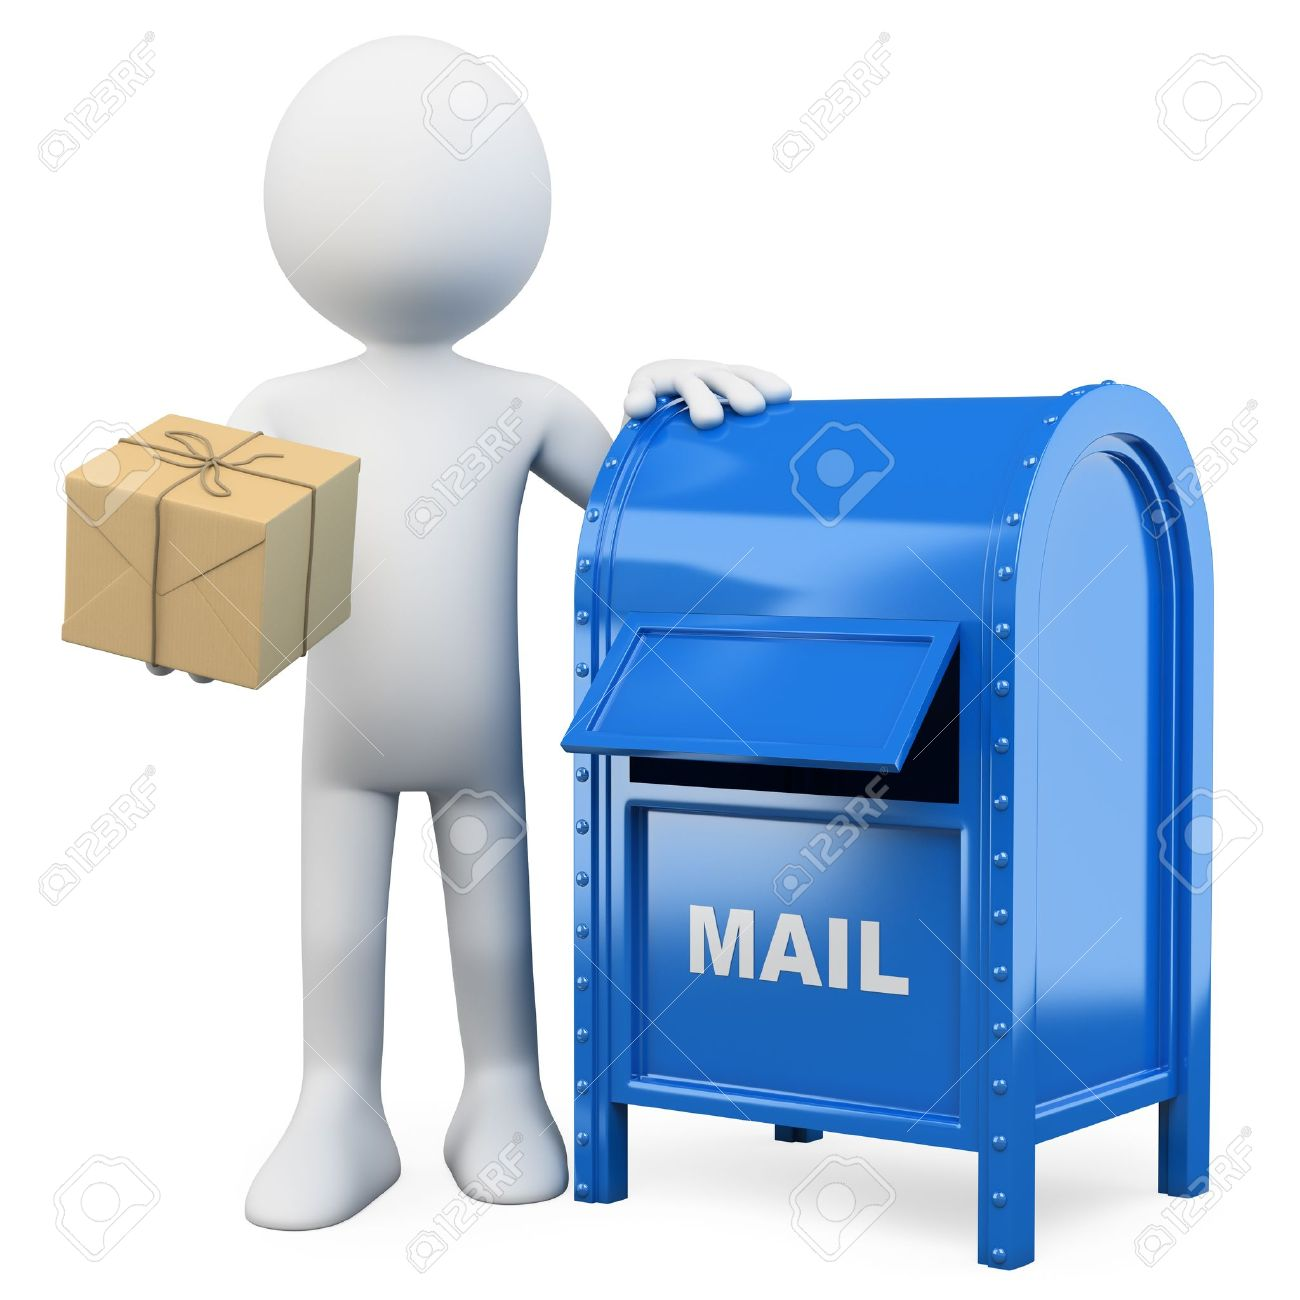 3d white person sending a package in a mail box. 3d image. Isolated white background. Stock Photo - 13784241